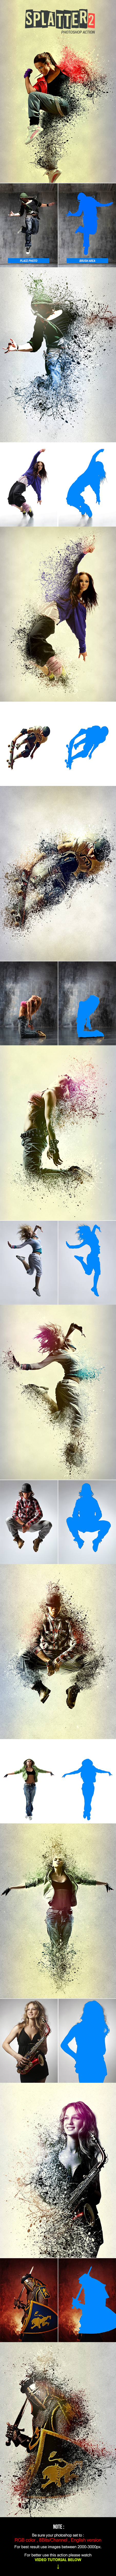 Splatter 2 - Photoshop Action - Photo Effects Actions